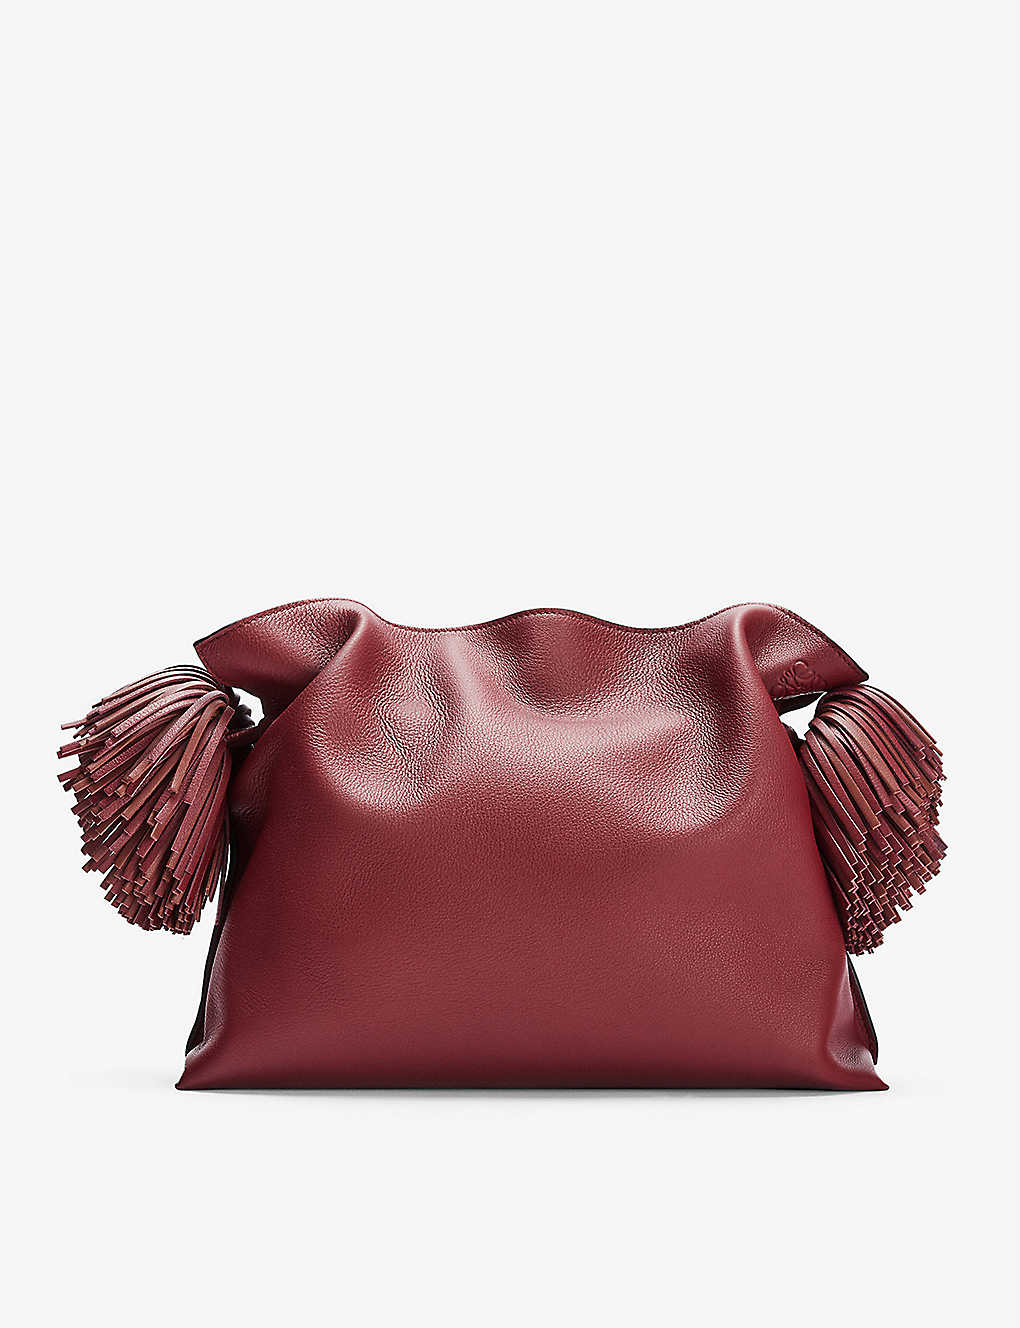 LOEWE: Flamenco tasselled leather clutch